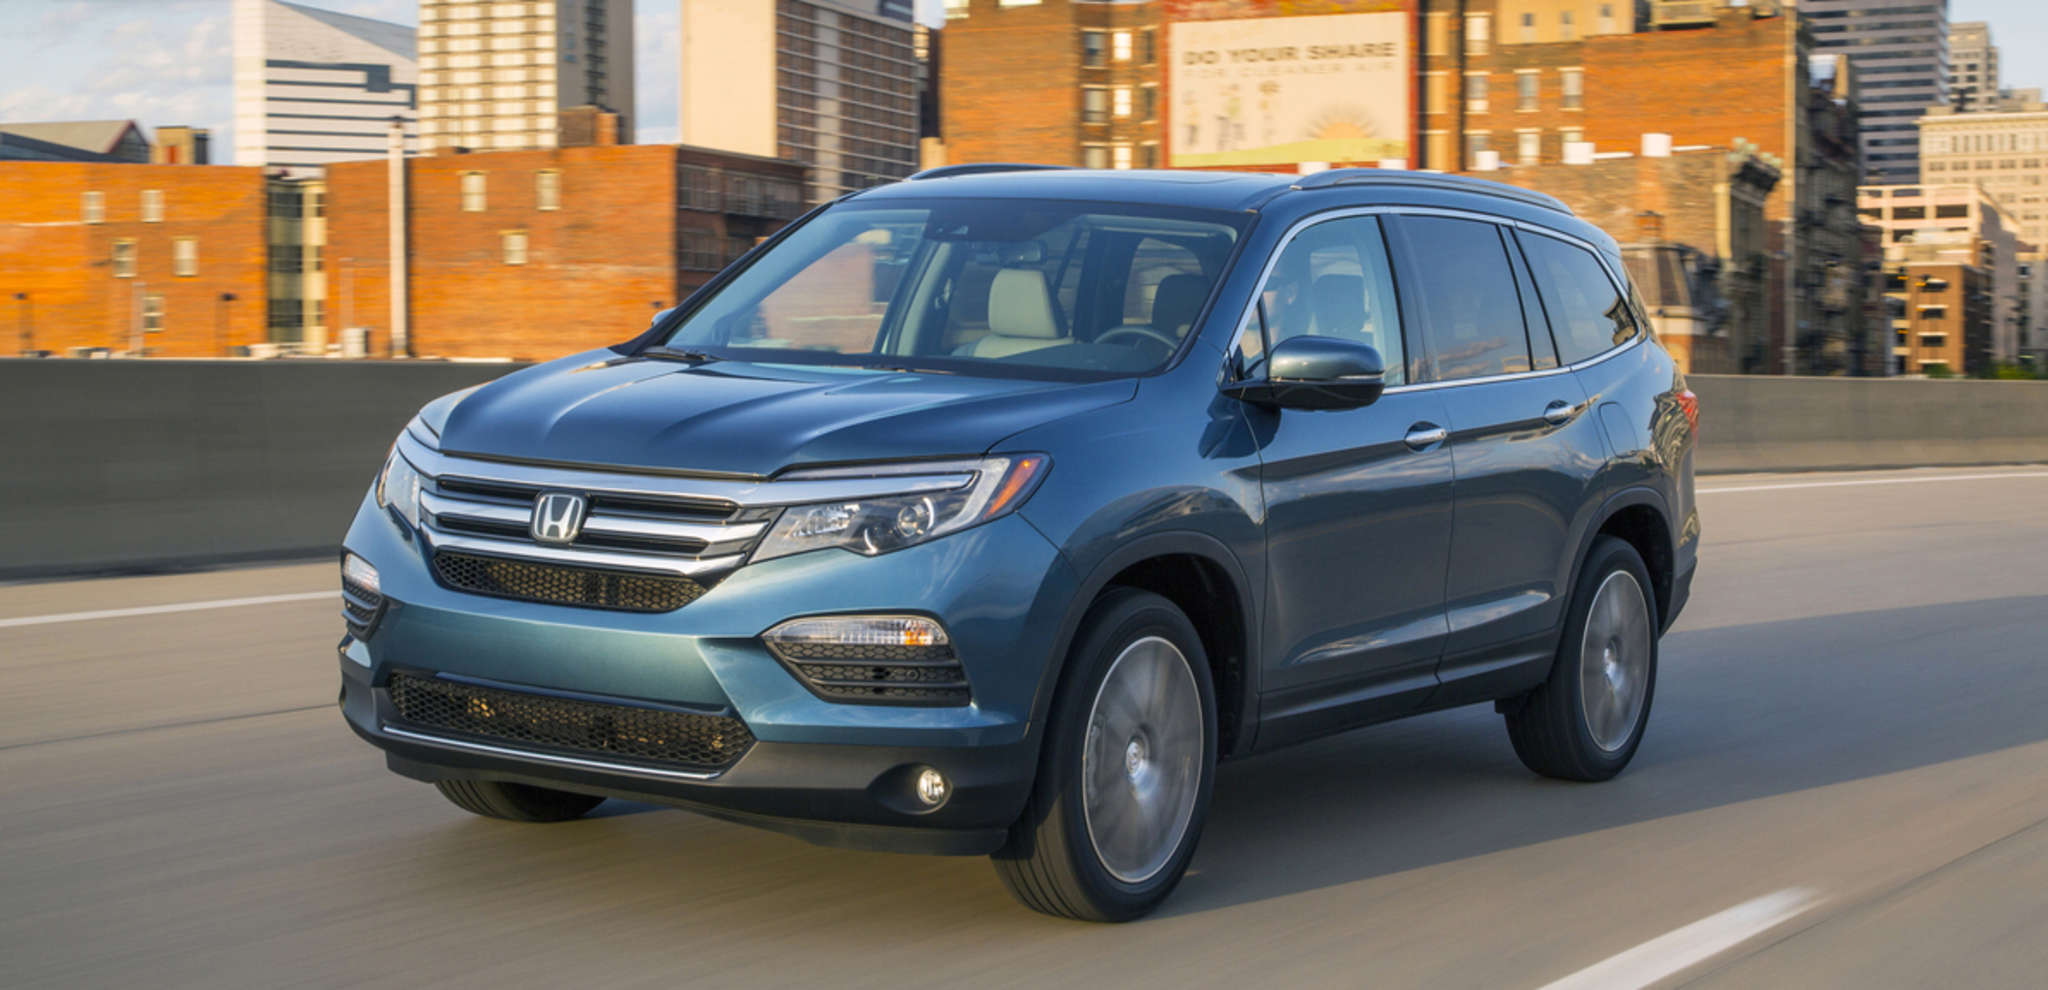 The Honda Pilot Elite answers critics of its previous styling with a sleek new profile.